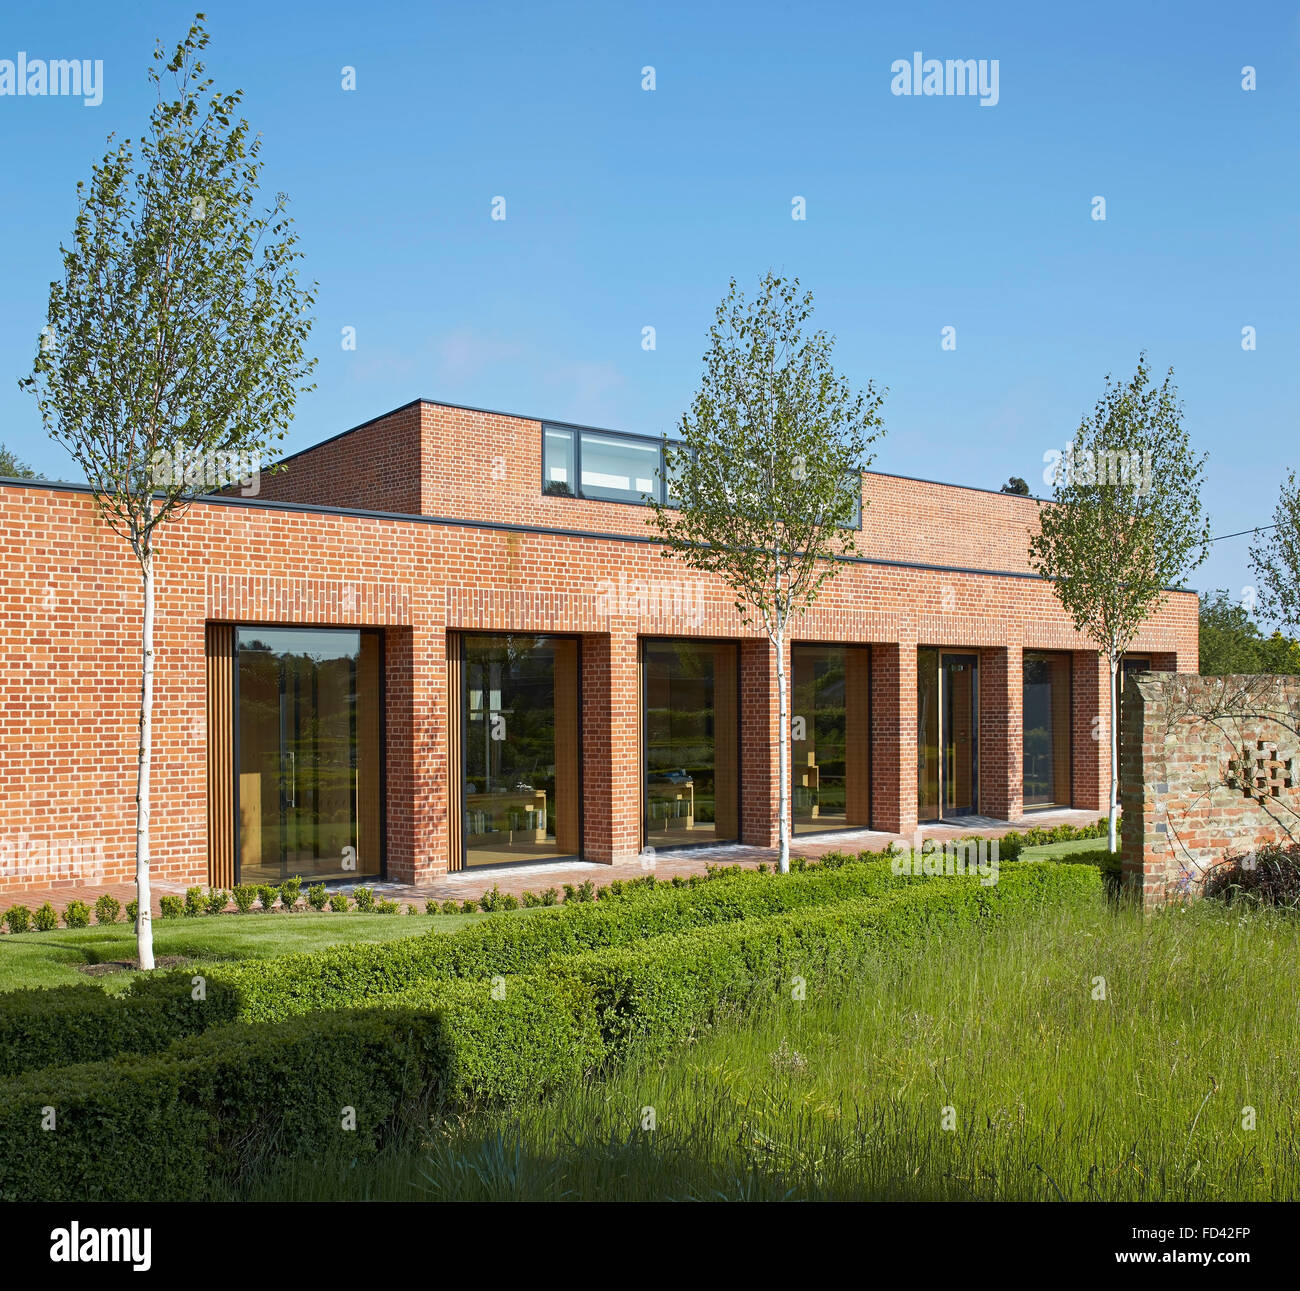 Brick piers with recessed full-height windows. Britten-Pears Archive, Aldeburgh, United Kingdom. Architect: Stanton - Stock Image